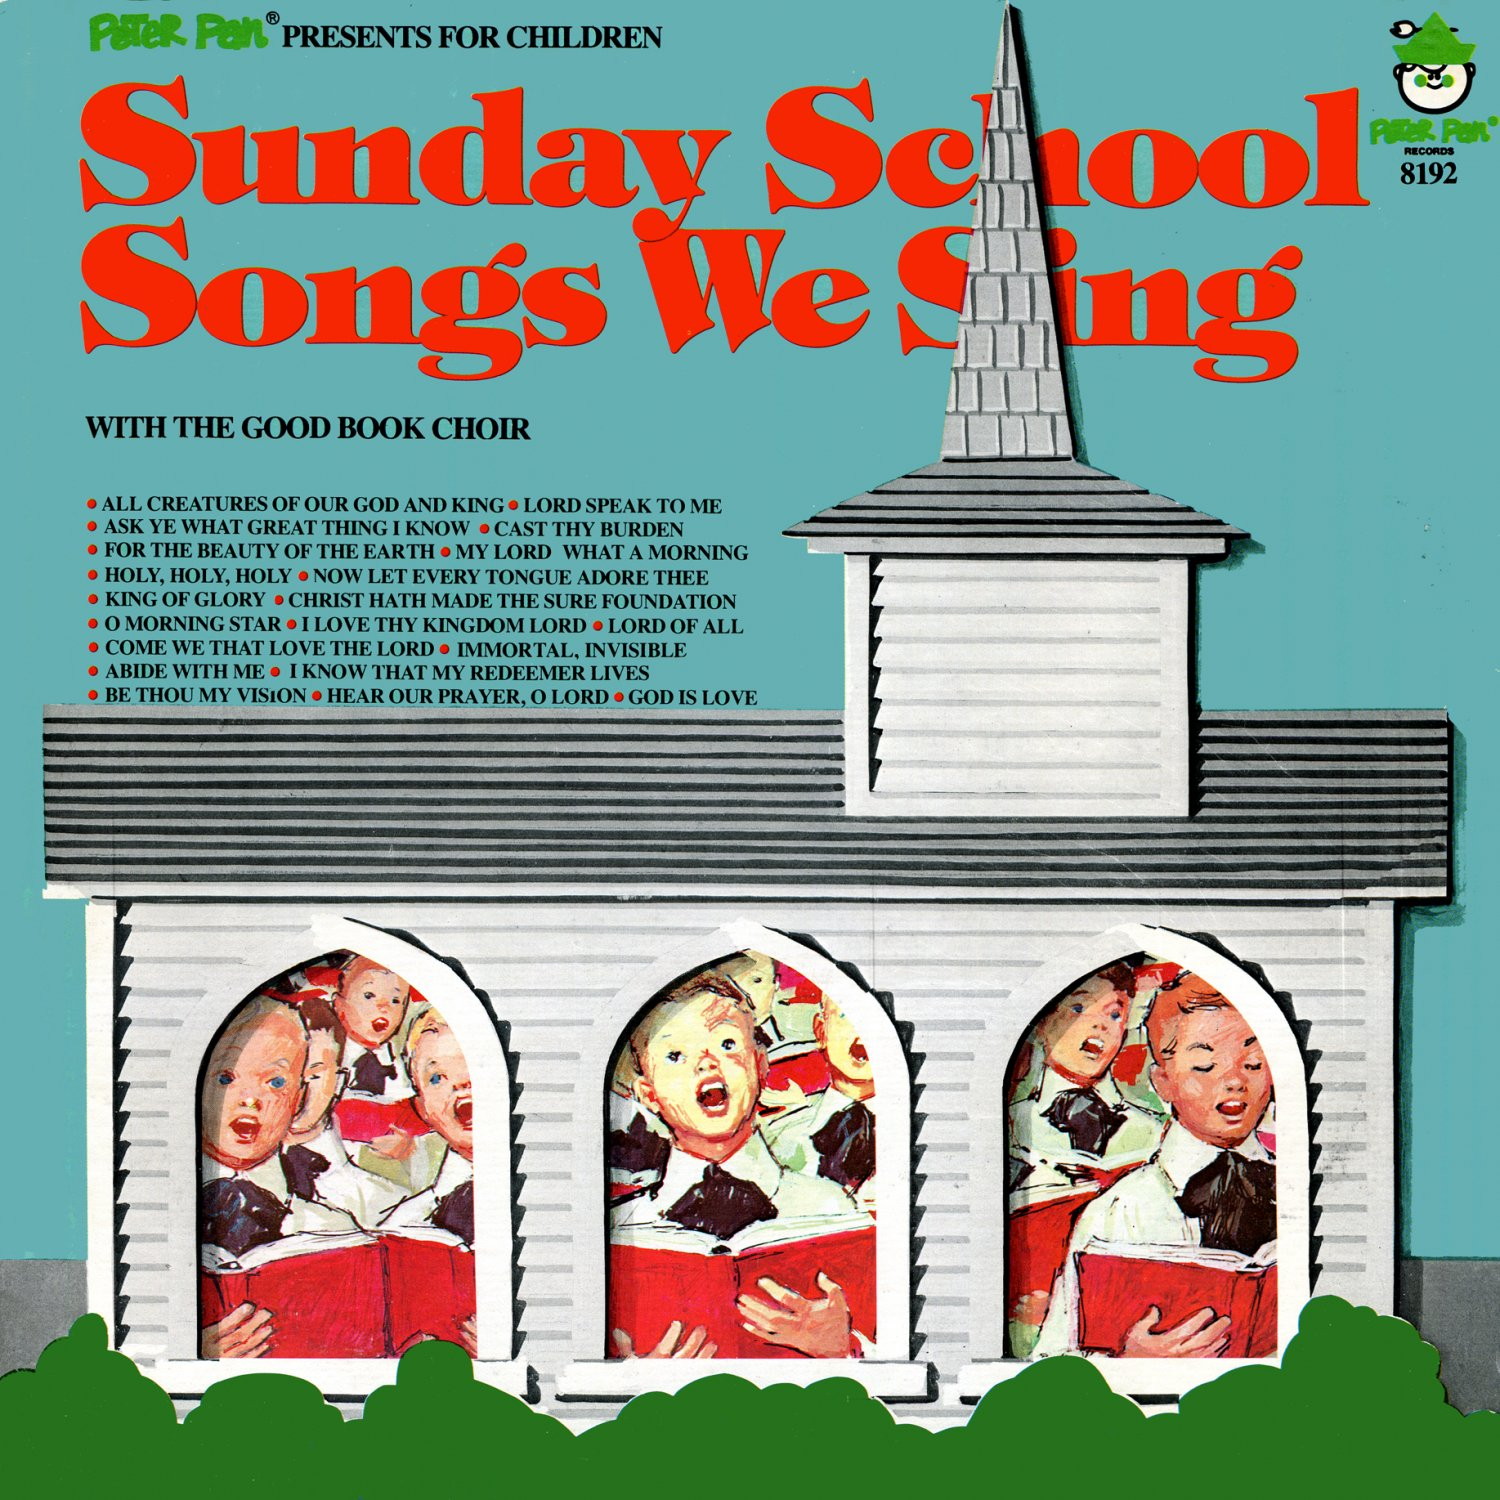 Sunday School Songs We Sing (with the Good Boy Choir) - Peter Pan Records for Children LP/CD